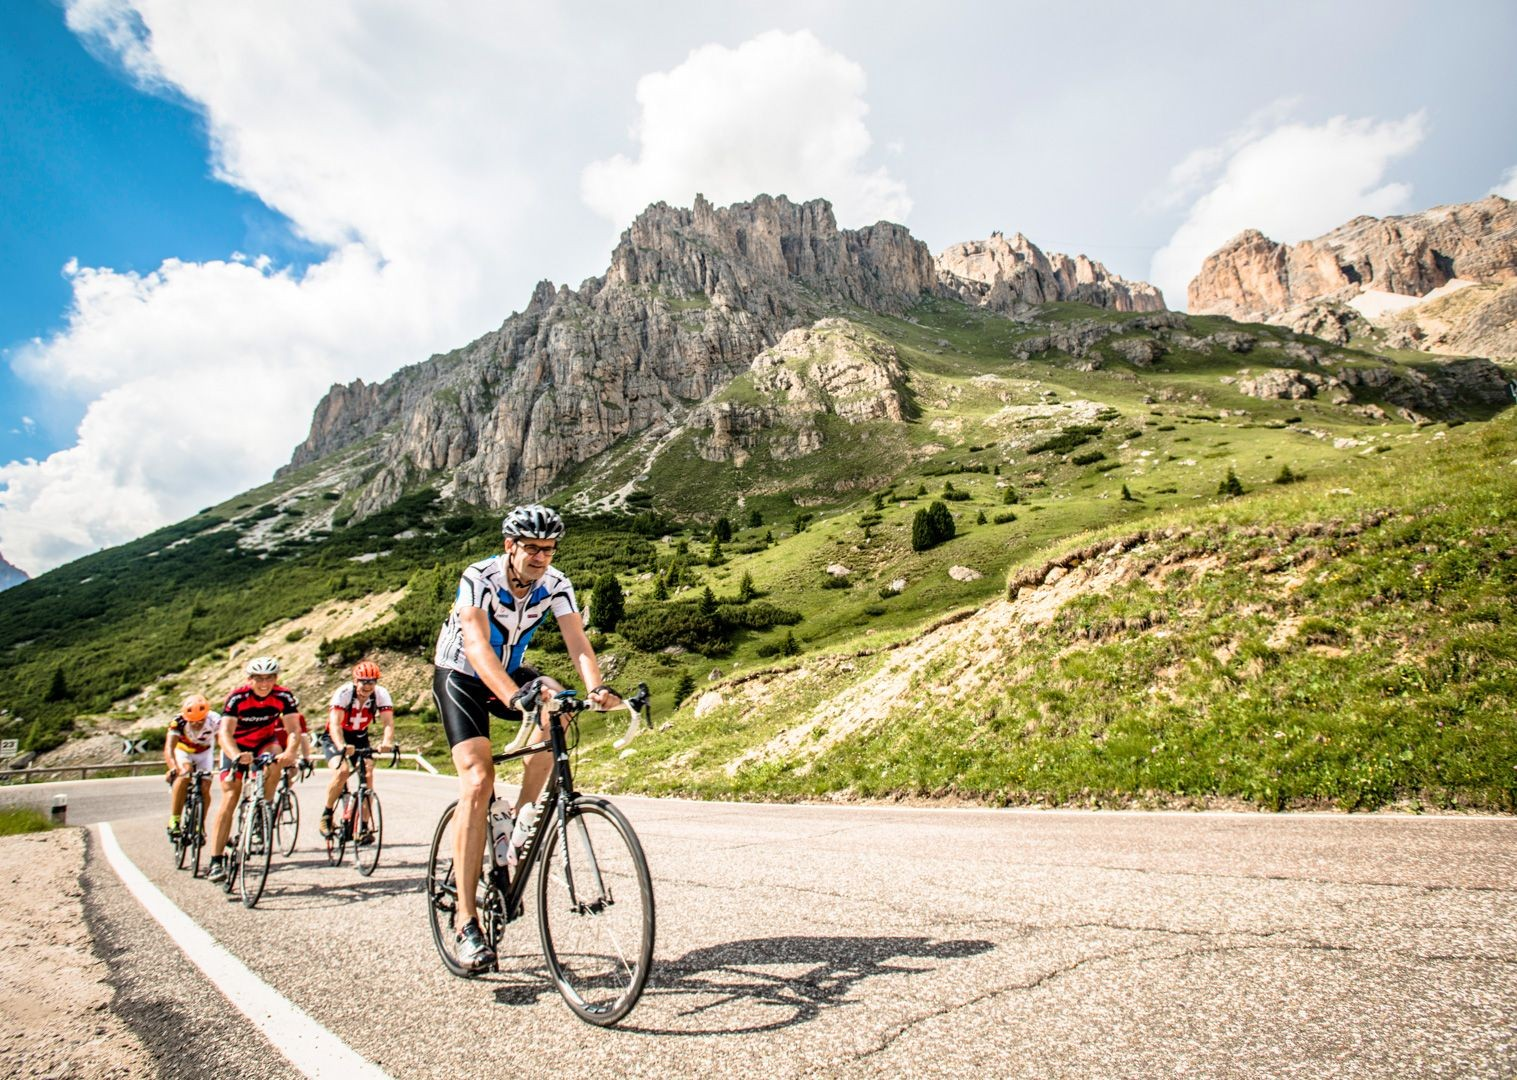 challenging-climbs-italian-dolomites-road-bike-skedaddle.jpg - Italy - Dolomiti Discoverer - Guided Road Cycling Holiday - Road Cycling